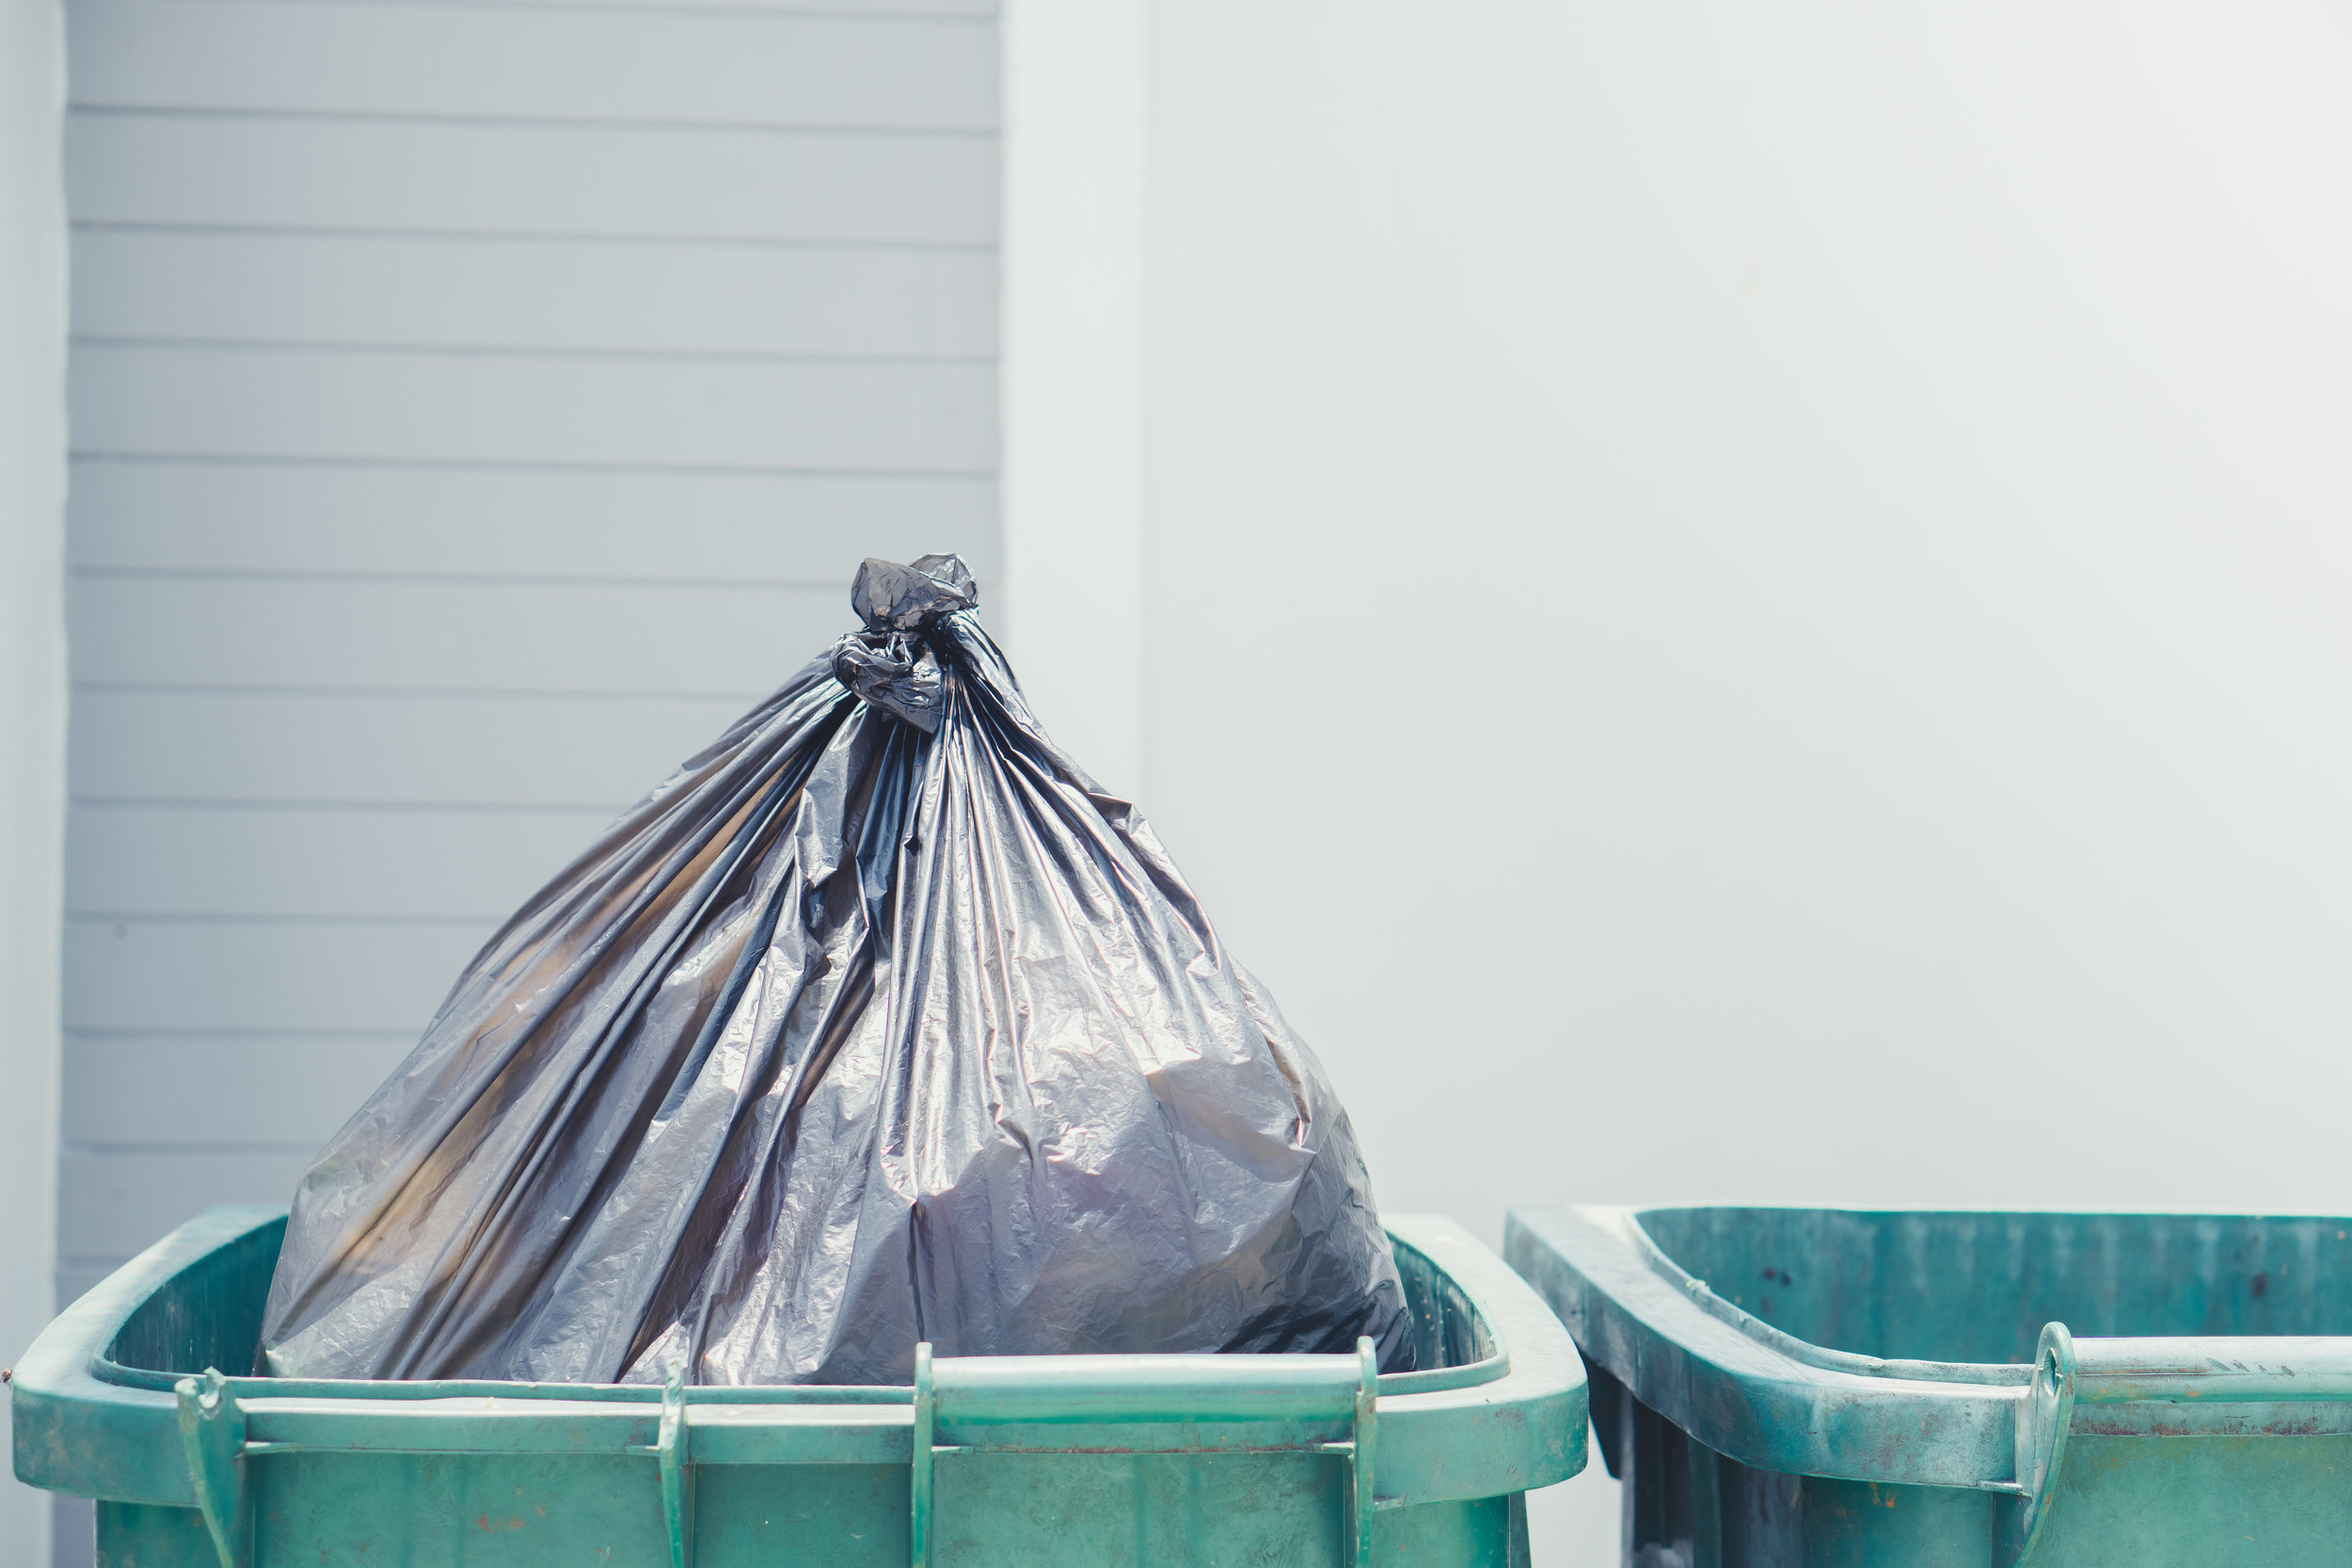 <p><strong>01. PERFORM A WASTE AUDIT</strong></p>